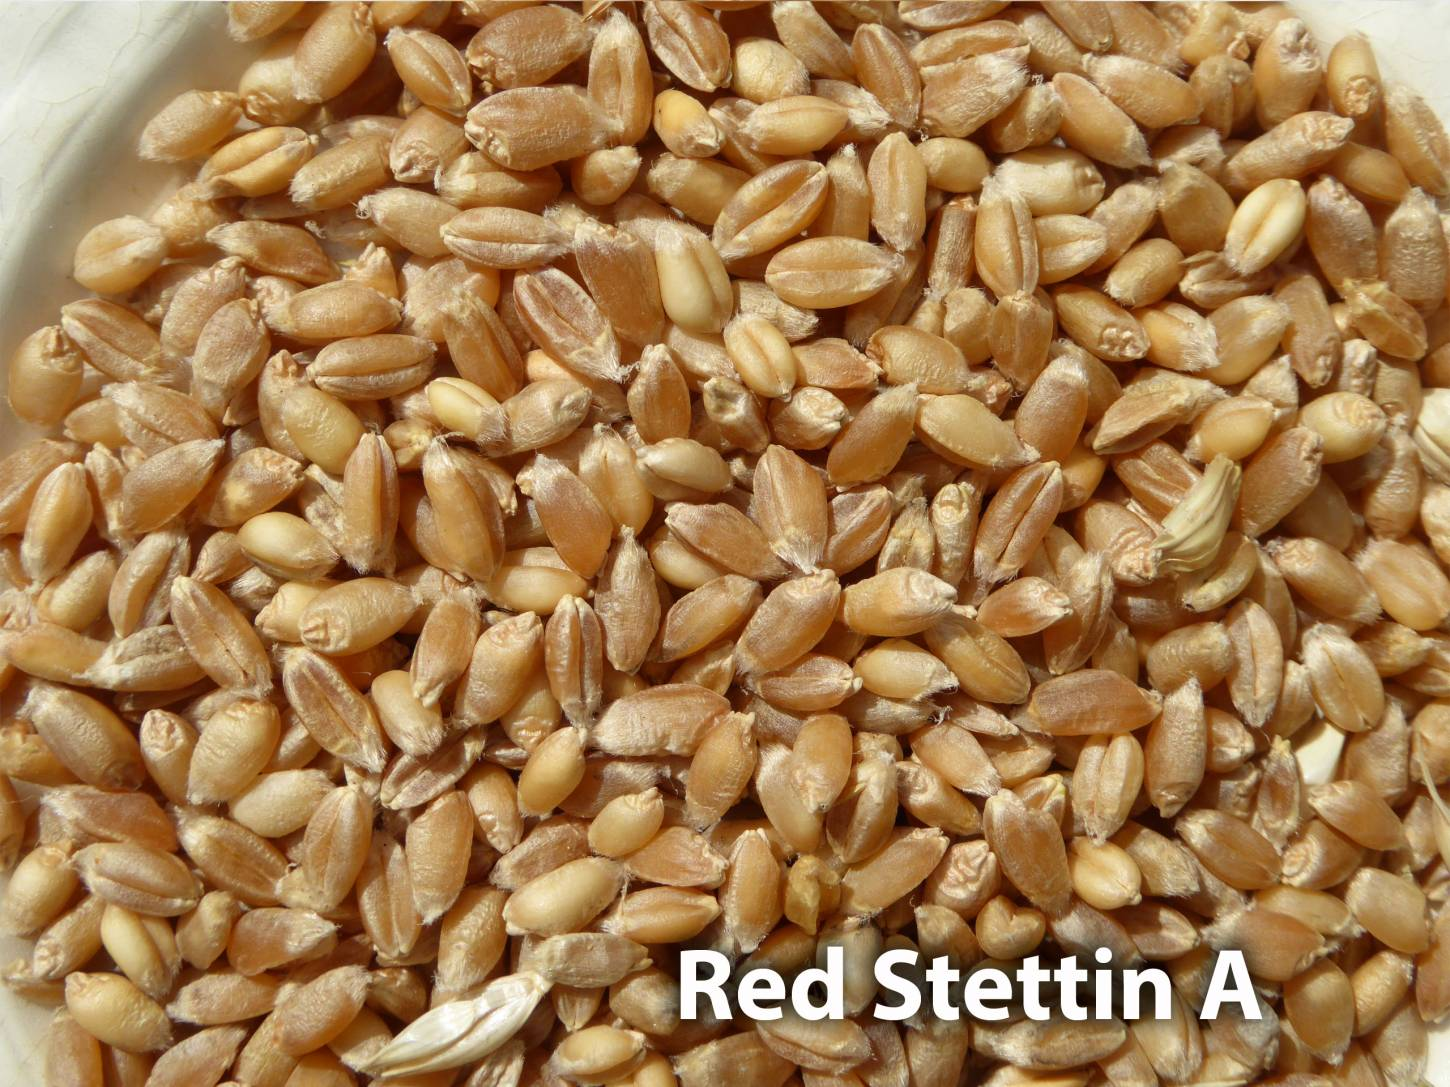 <a href='http://www.wheat-gateway.org.uk/hub.php?ID=57' target='_blank'>Red Stettin</a> grain samples, Red Stettin A